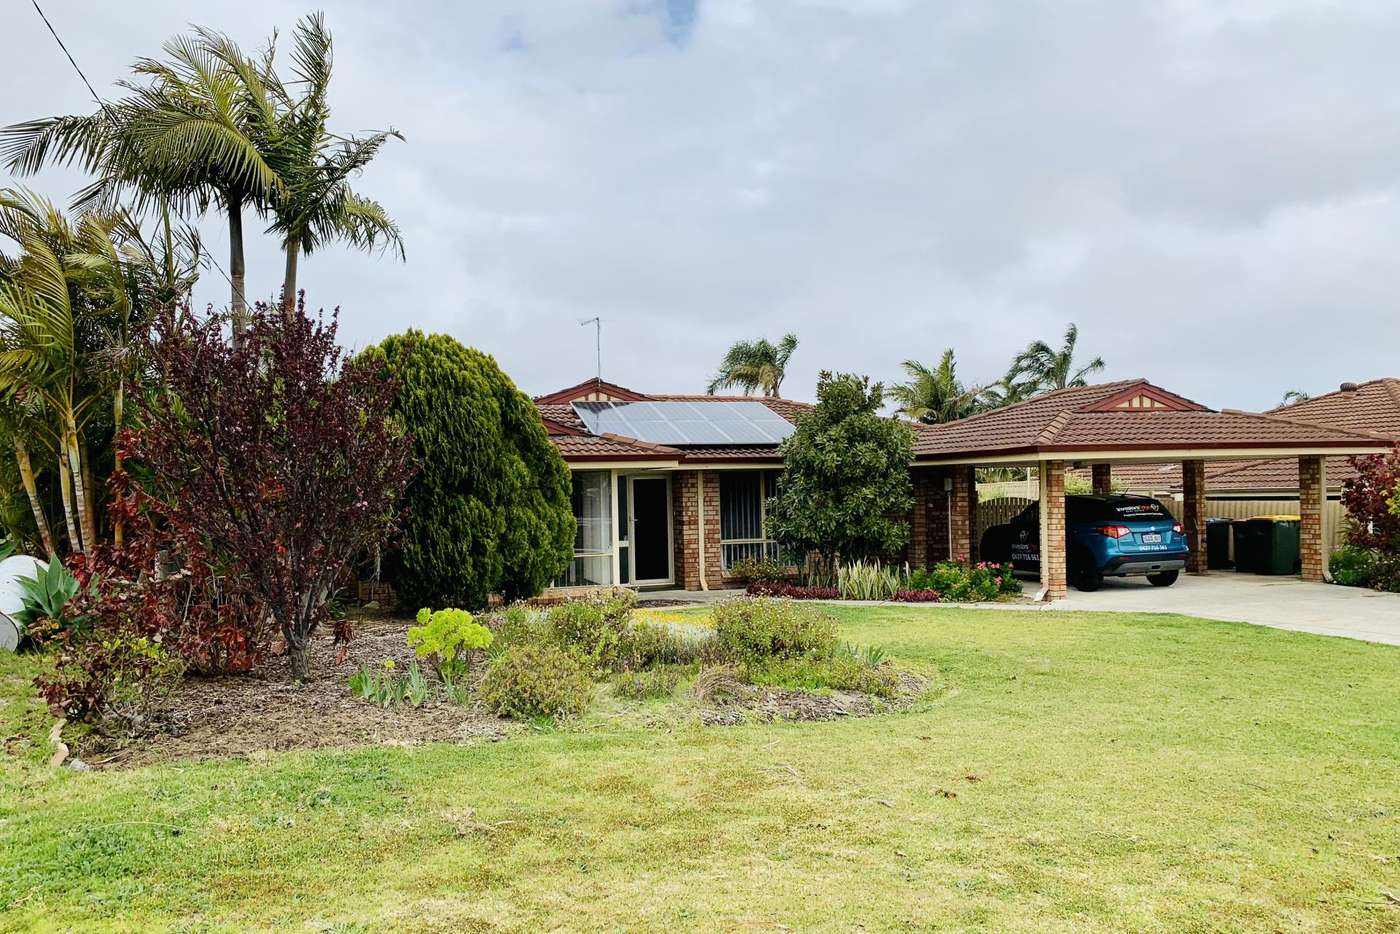 Main view of Homely house listing, 9 Munderee Place, Wanneroo WA 6065